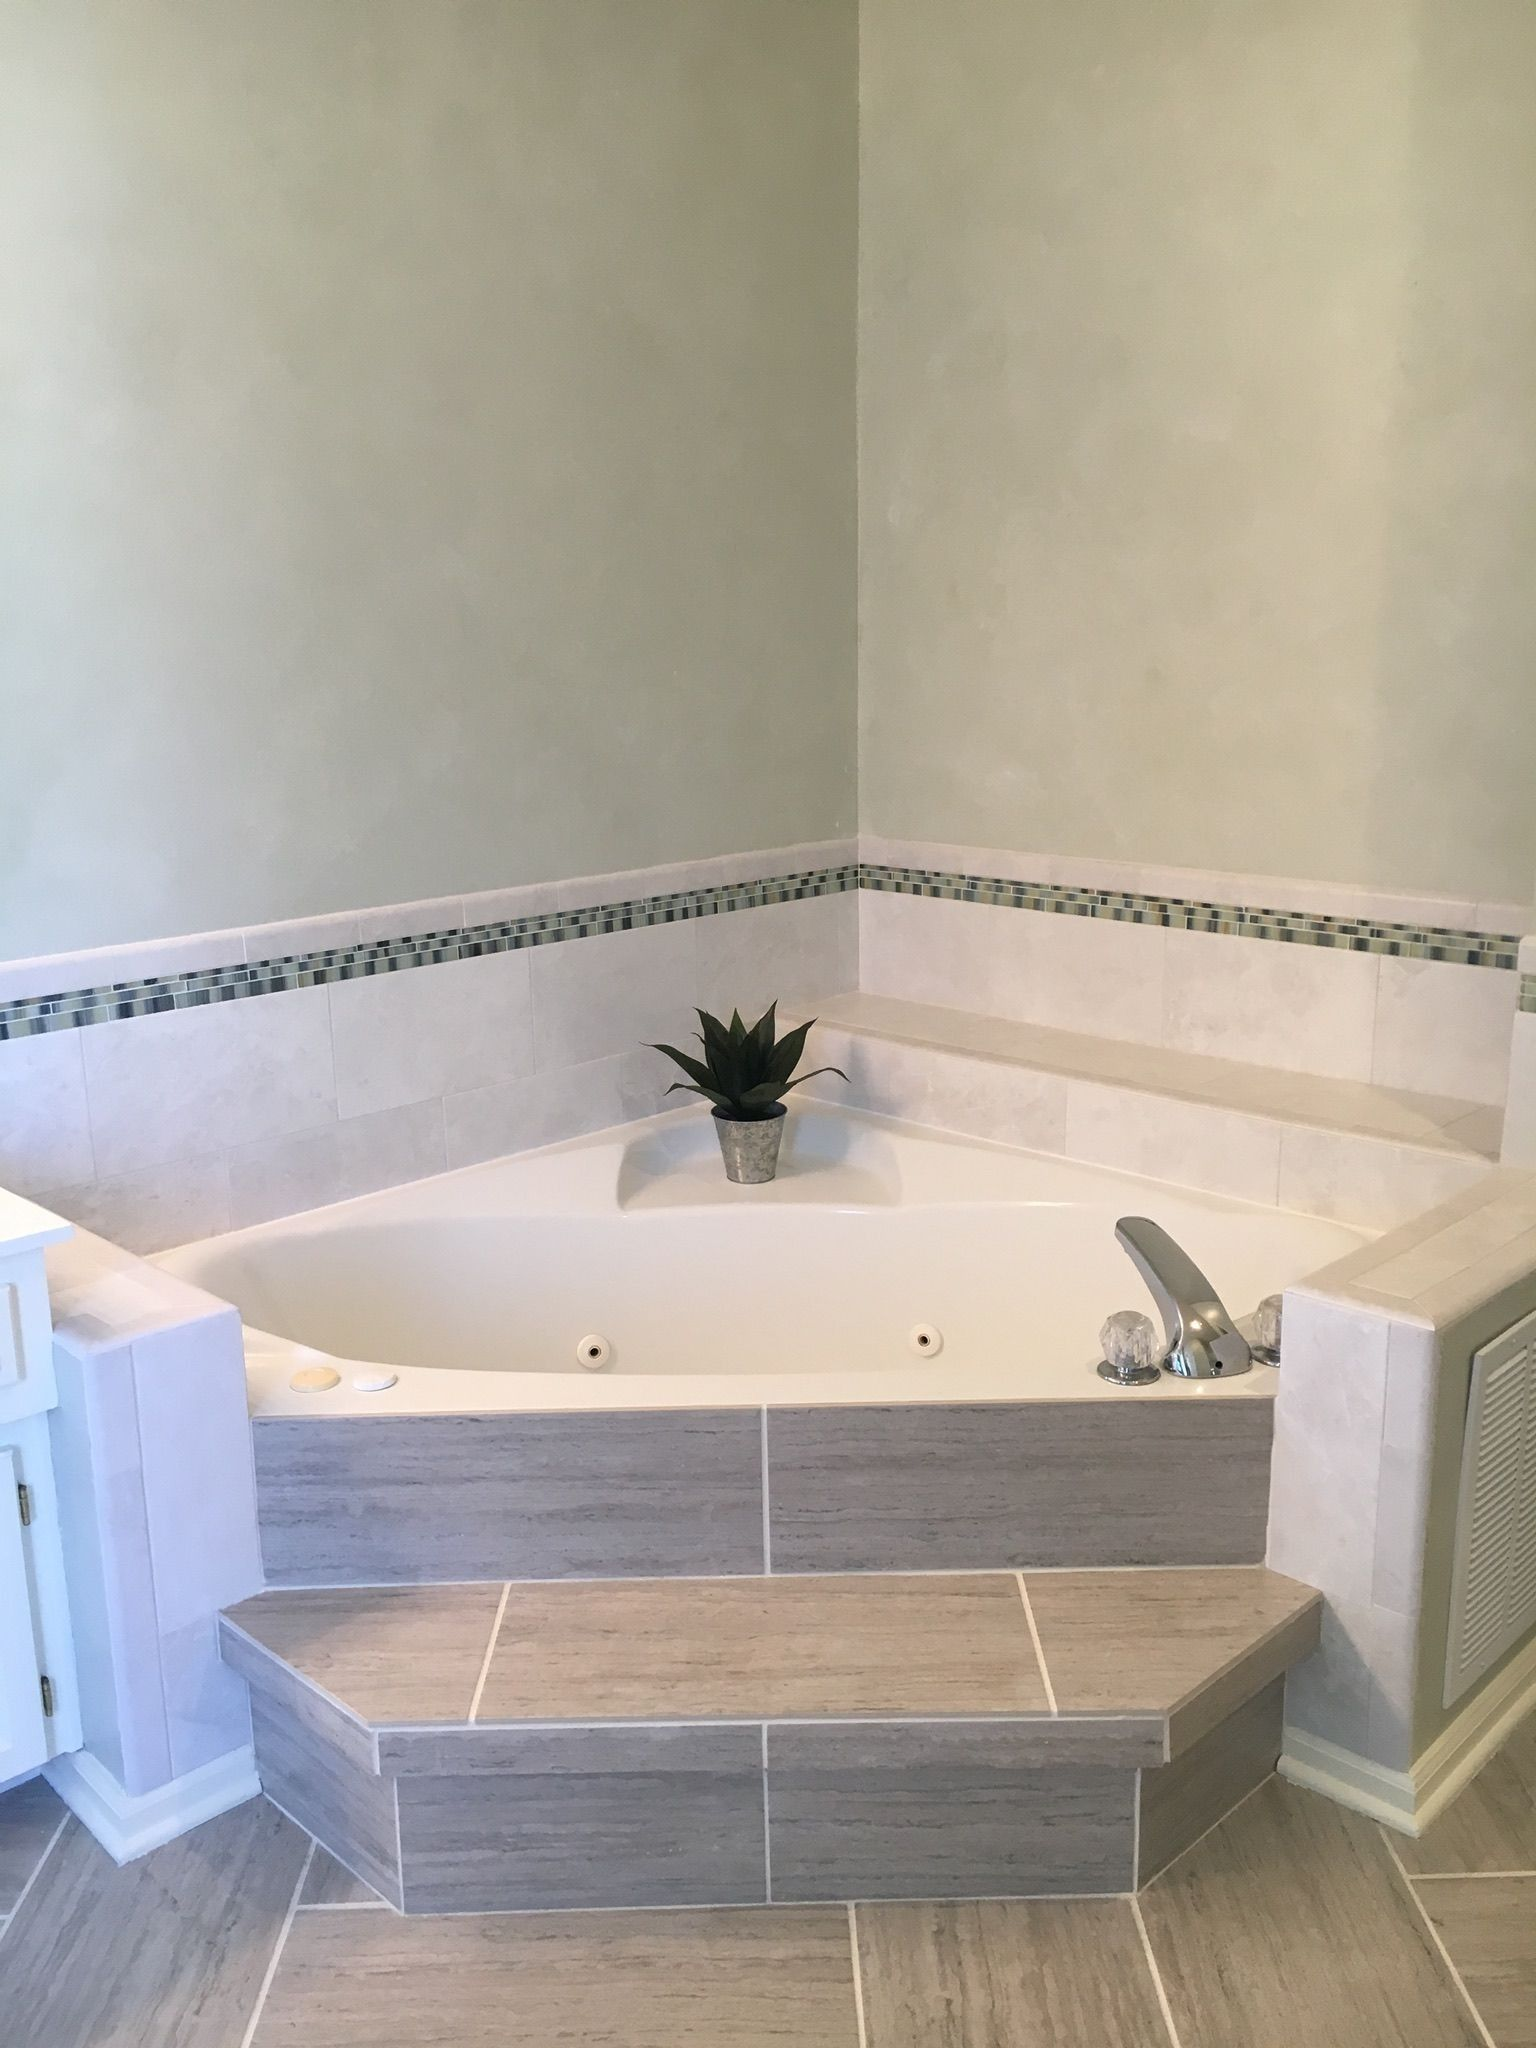 Best Furniture Ideas Ever | Tub remodel, Bathtub remodel, Garden